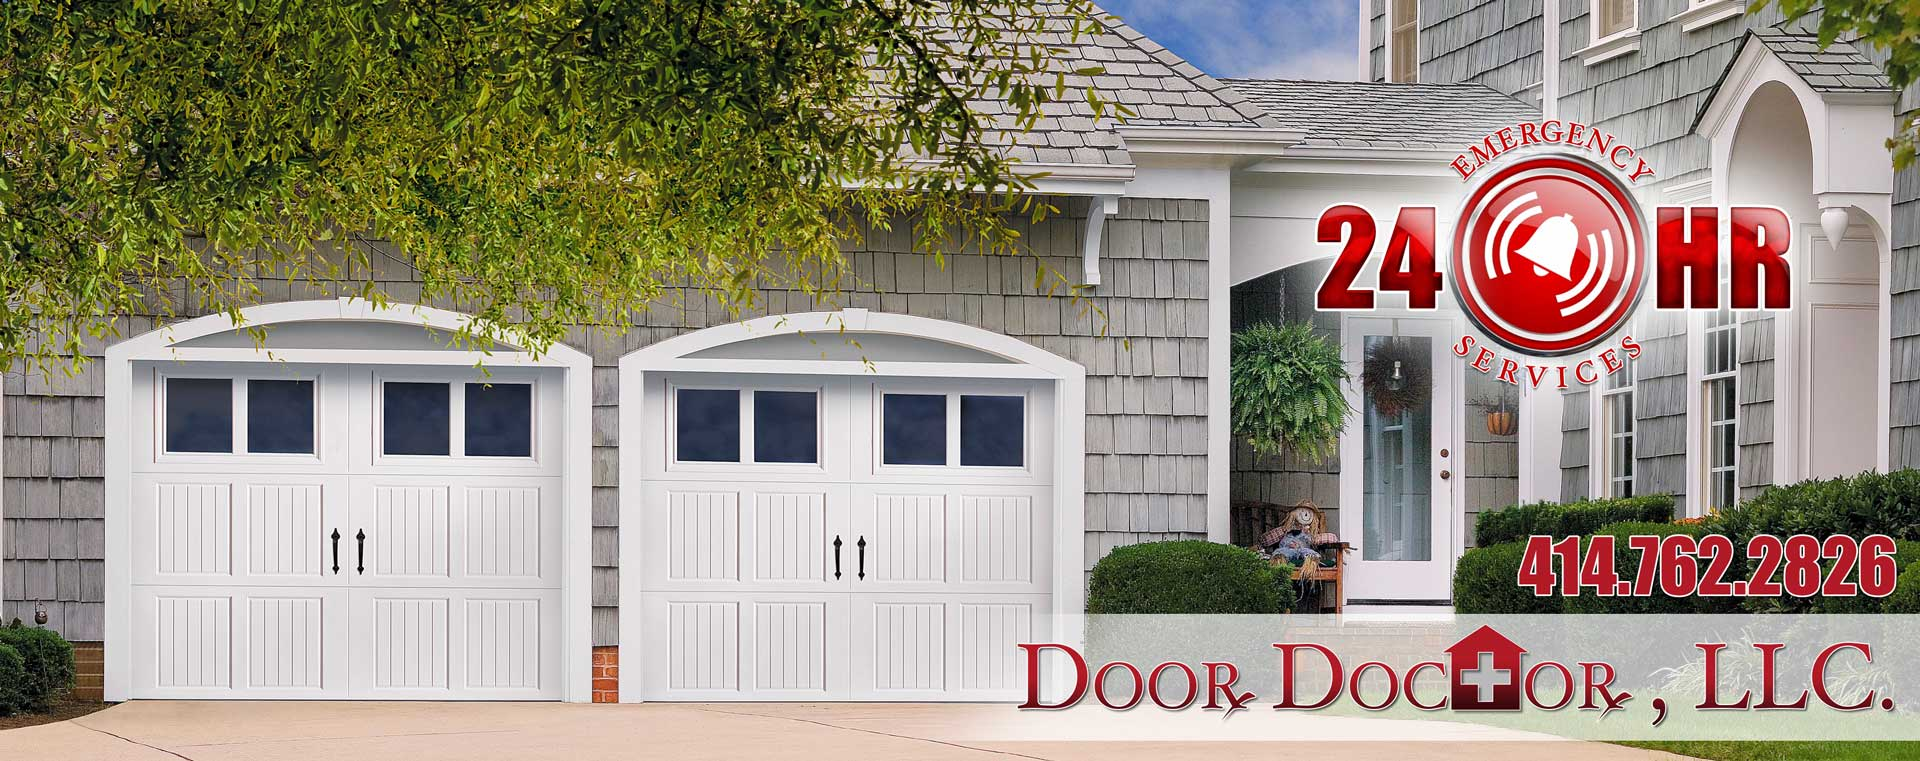 Milwaukee Garage Door Repair Garage Door Service Garage Door